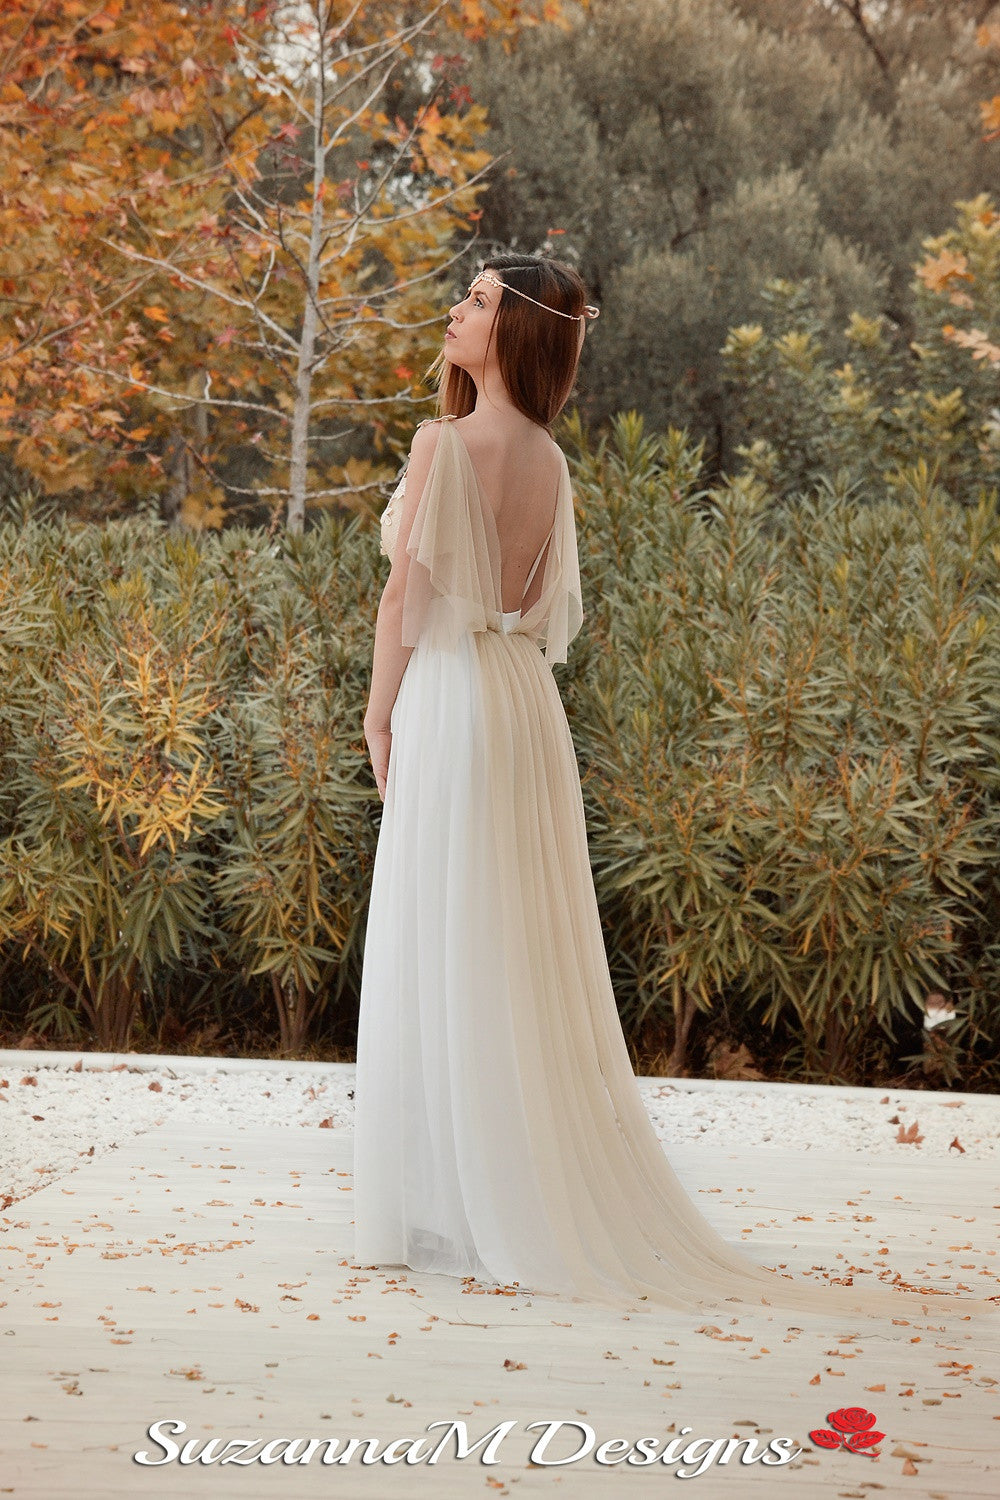 Adrienne Handmade Grecian Wedding Gown - Wedding Dress - SuzannaM Designs